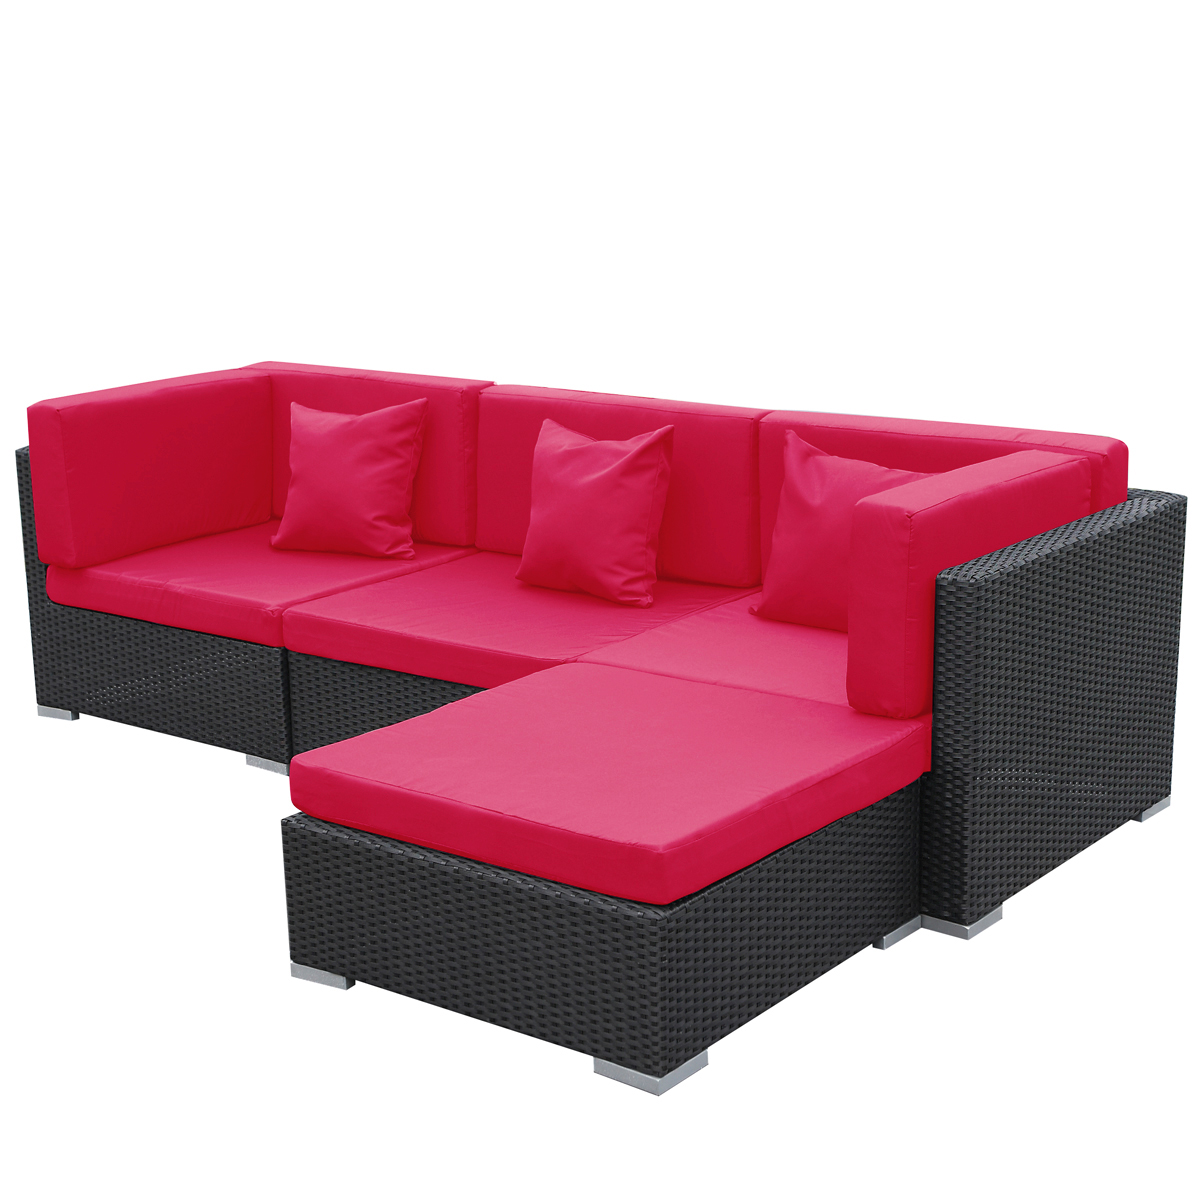 gartenm bel gartenlounge polyrattan sofa bergen rot schwarz aluminium. Black Bedroom Furniture Sets. Home Design Ideas